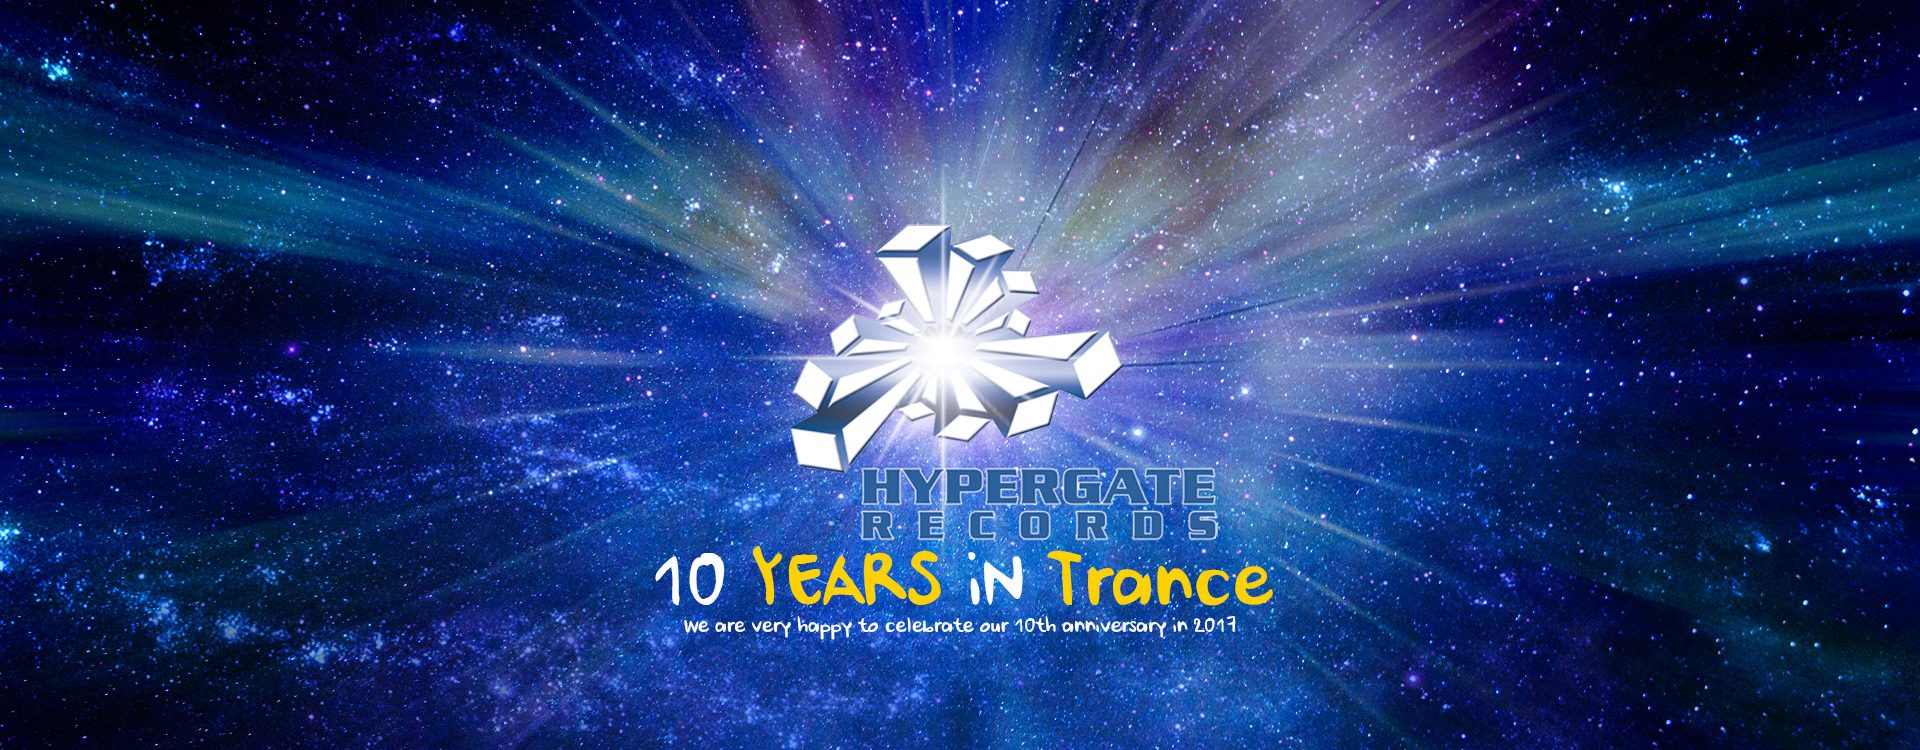 10 Years in Trance